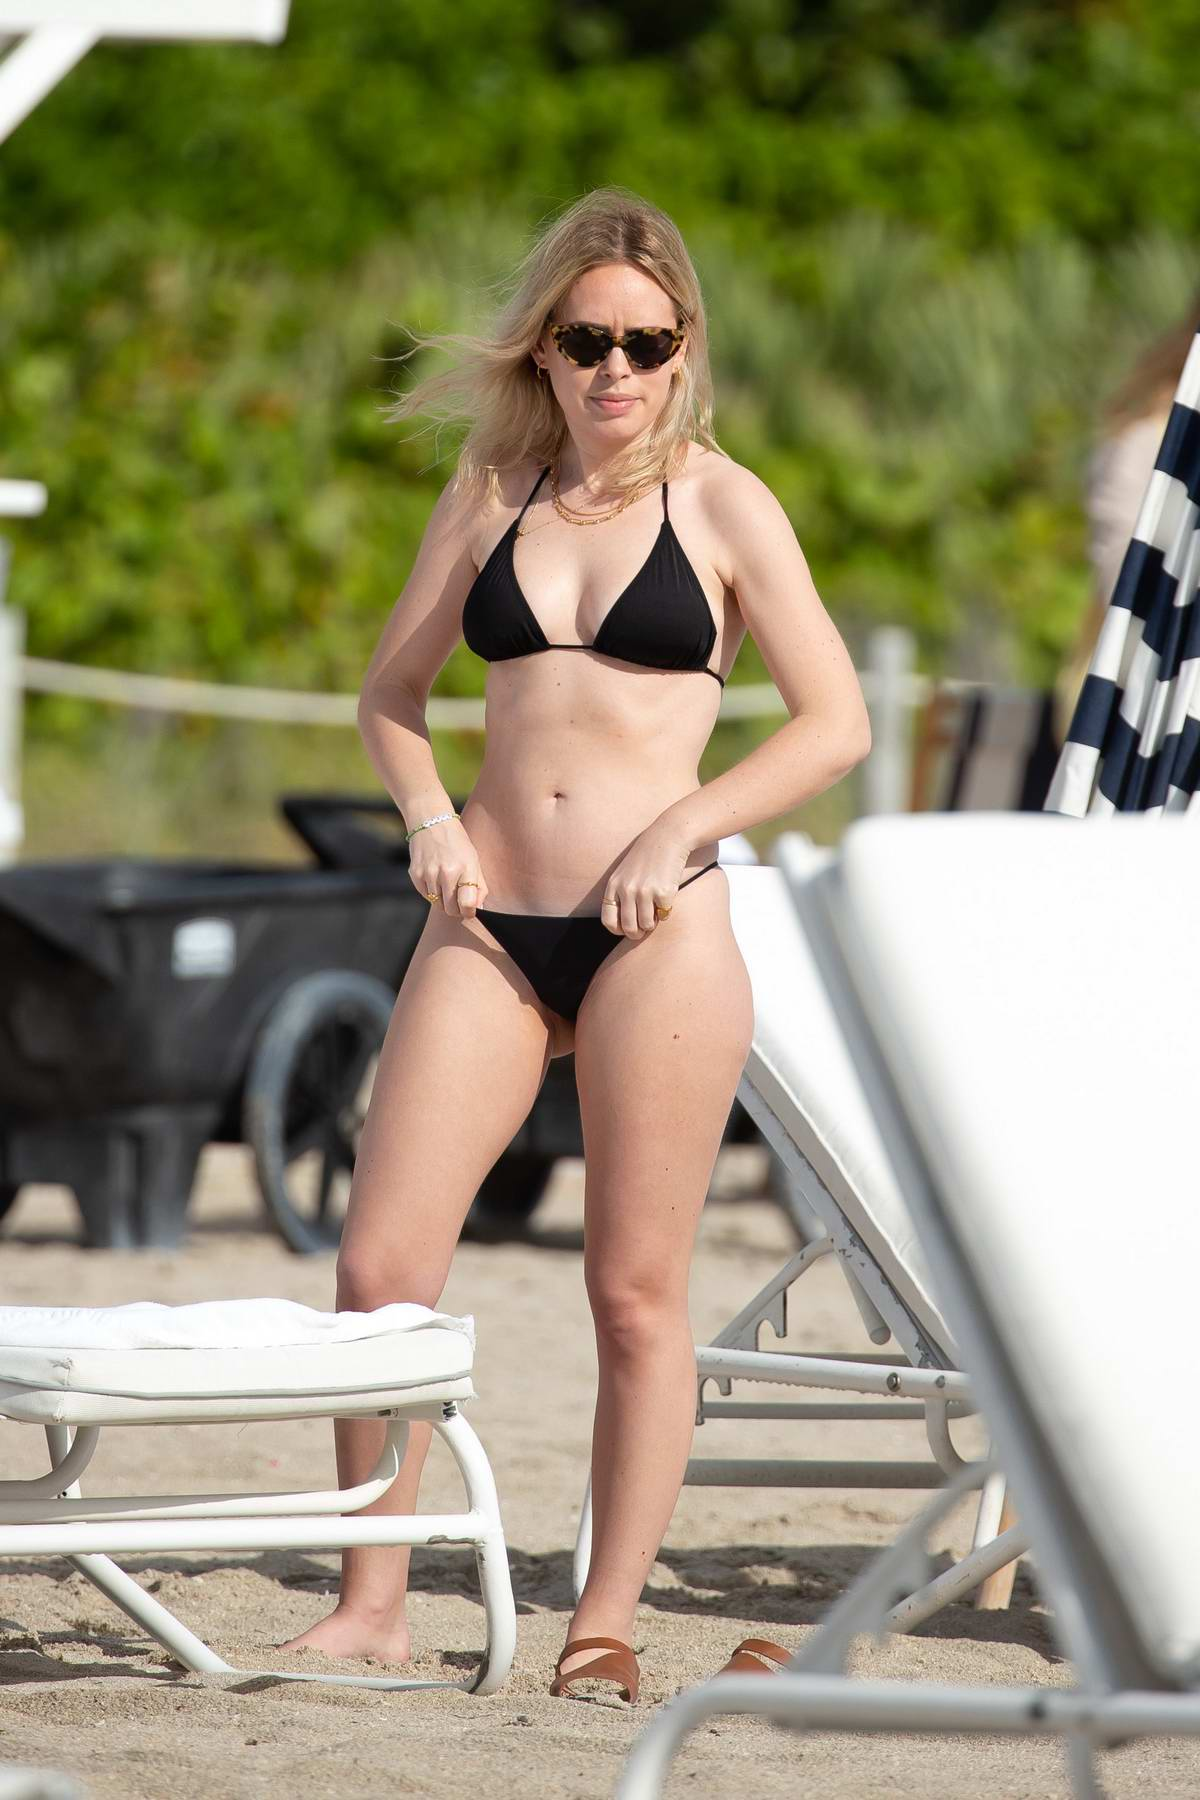 Tanya Burr shows off her bikini body on the beach in Miami, Florida